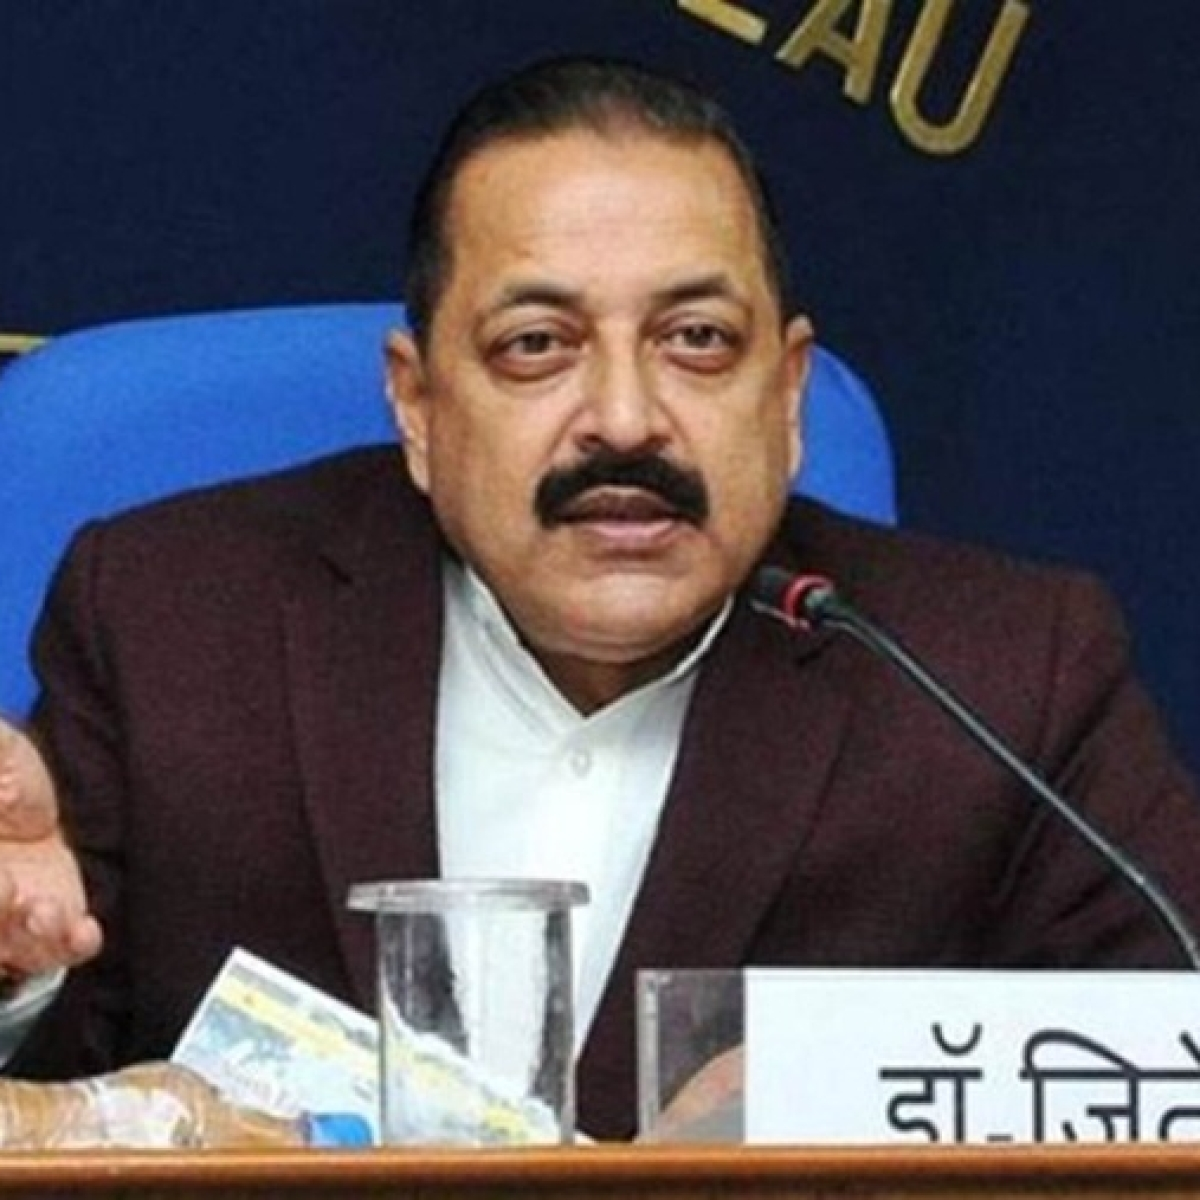 Those who have enjoyed premium by anti-India activism would have to pay for it: Jitendra Singh on Yasin Malik